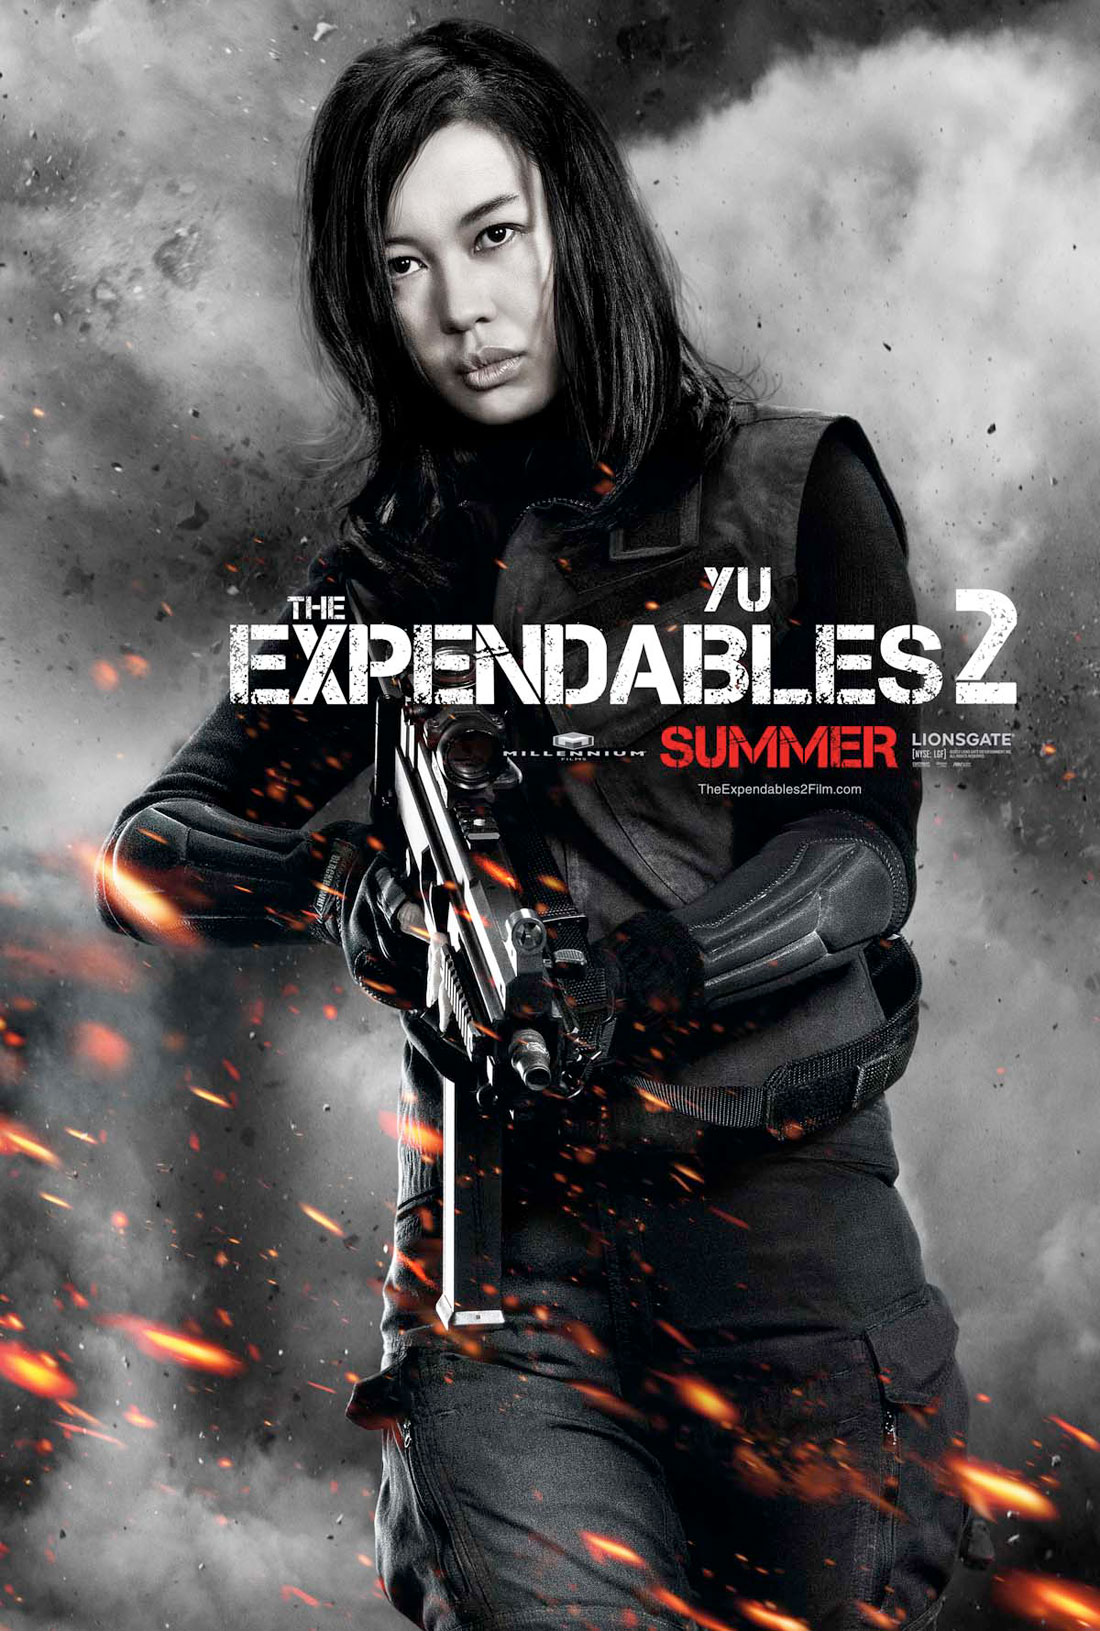 2CHARACTER-POSTER-EXPENDABLES-2